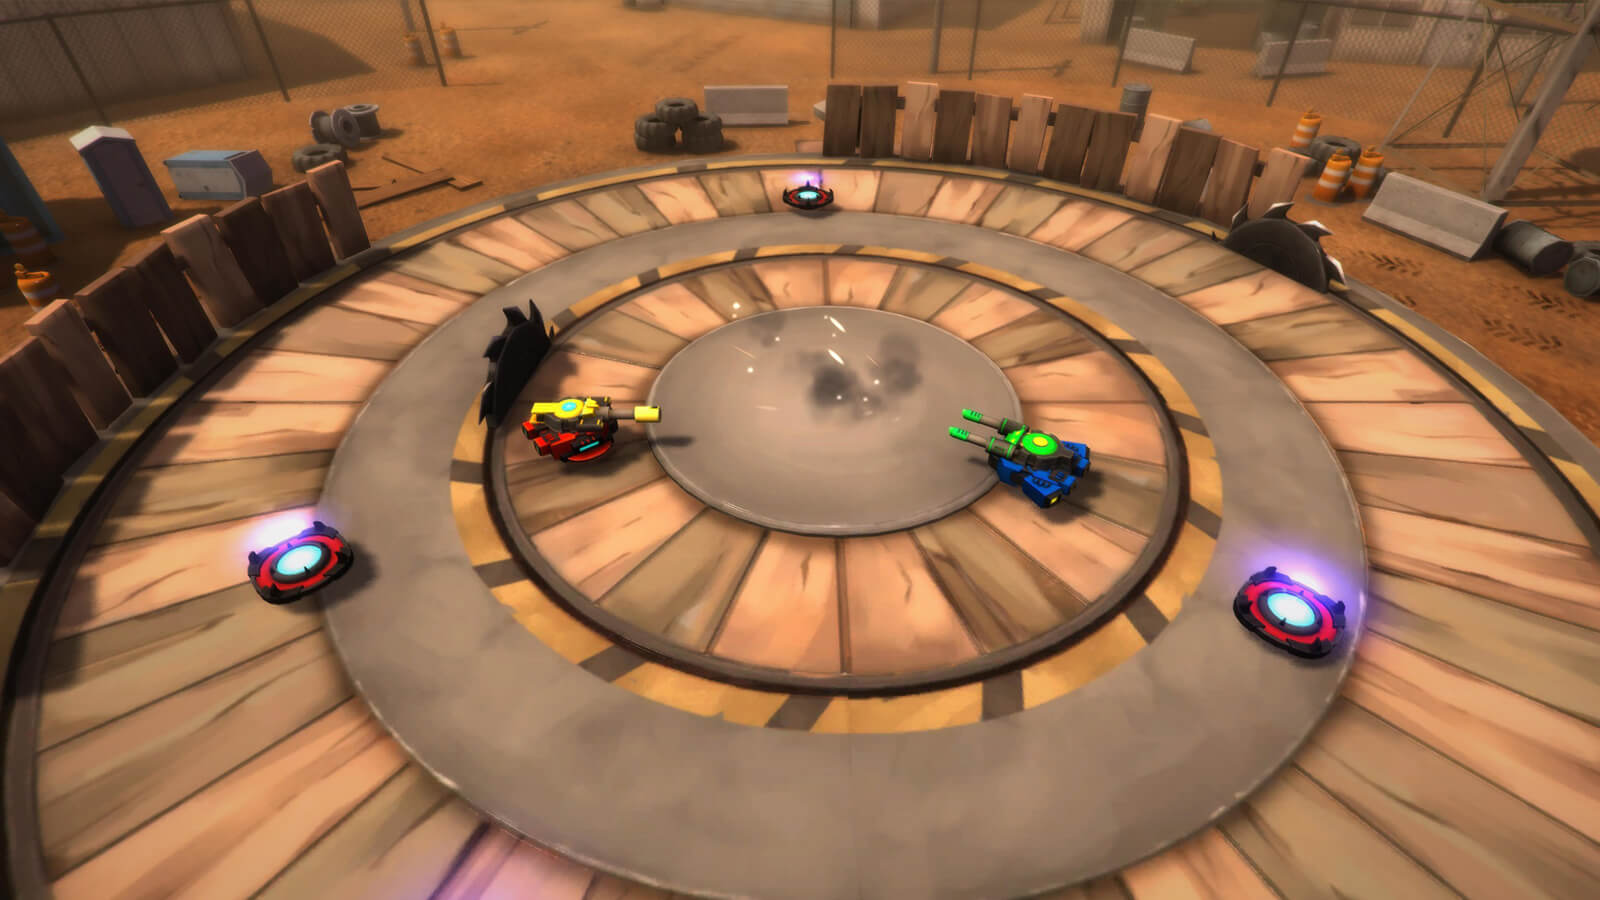 Two hover tanks face each other in a wooden battle arena with saw blades buzzing around them.